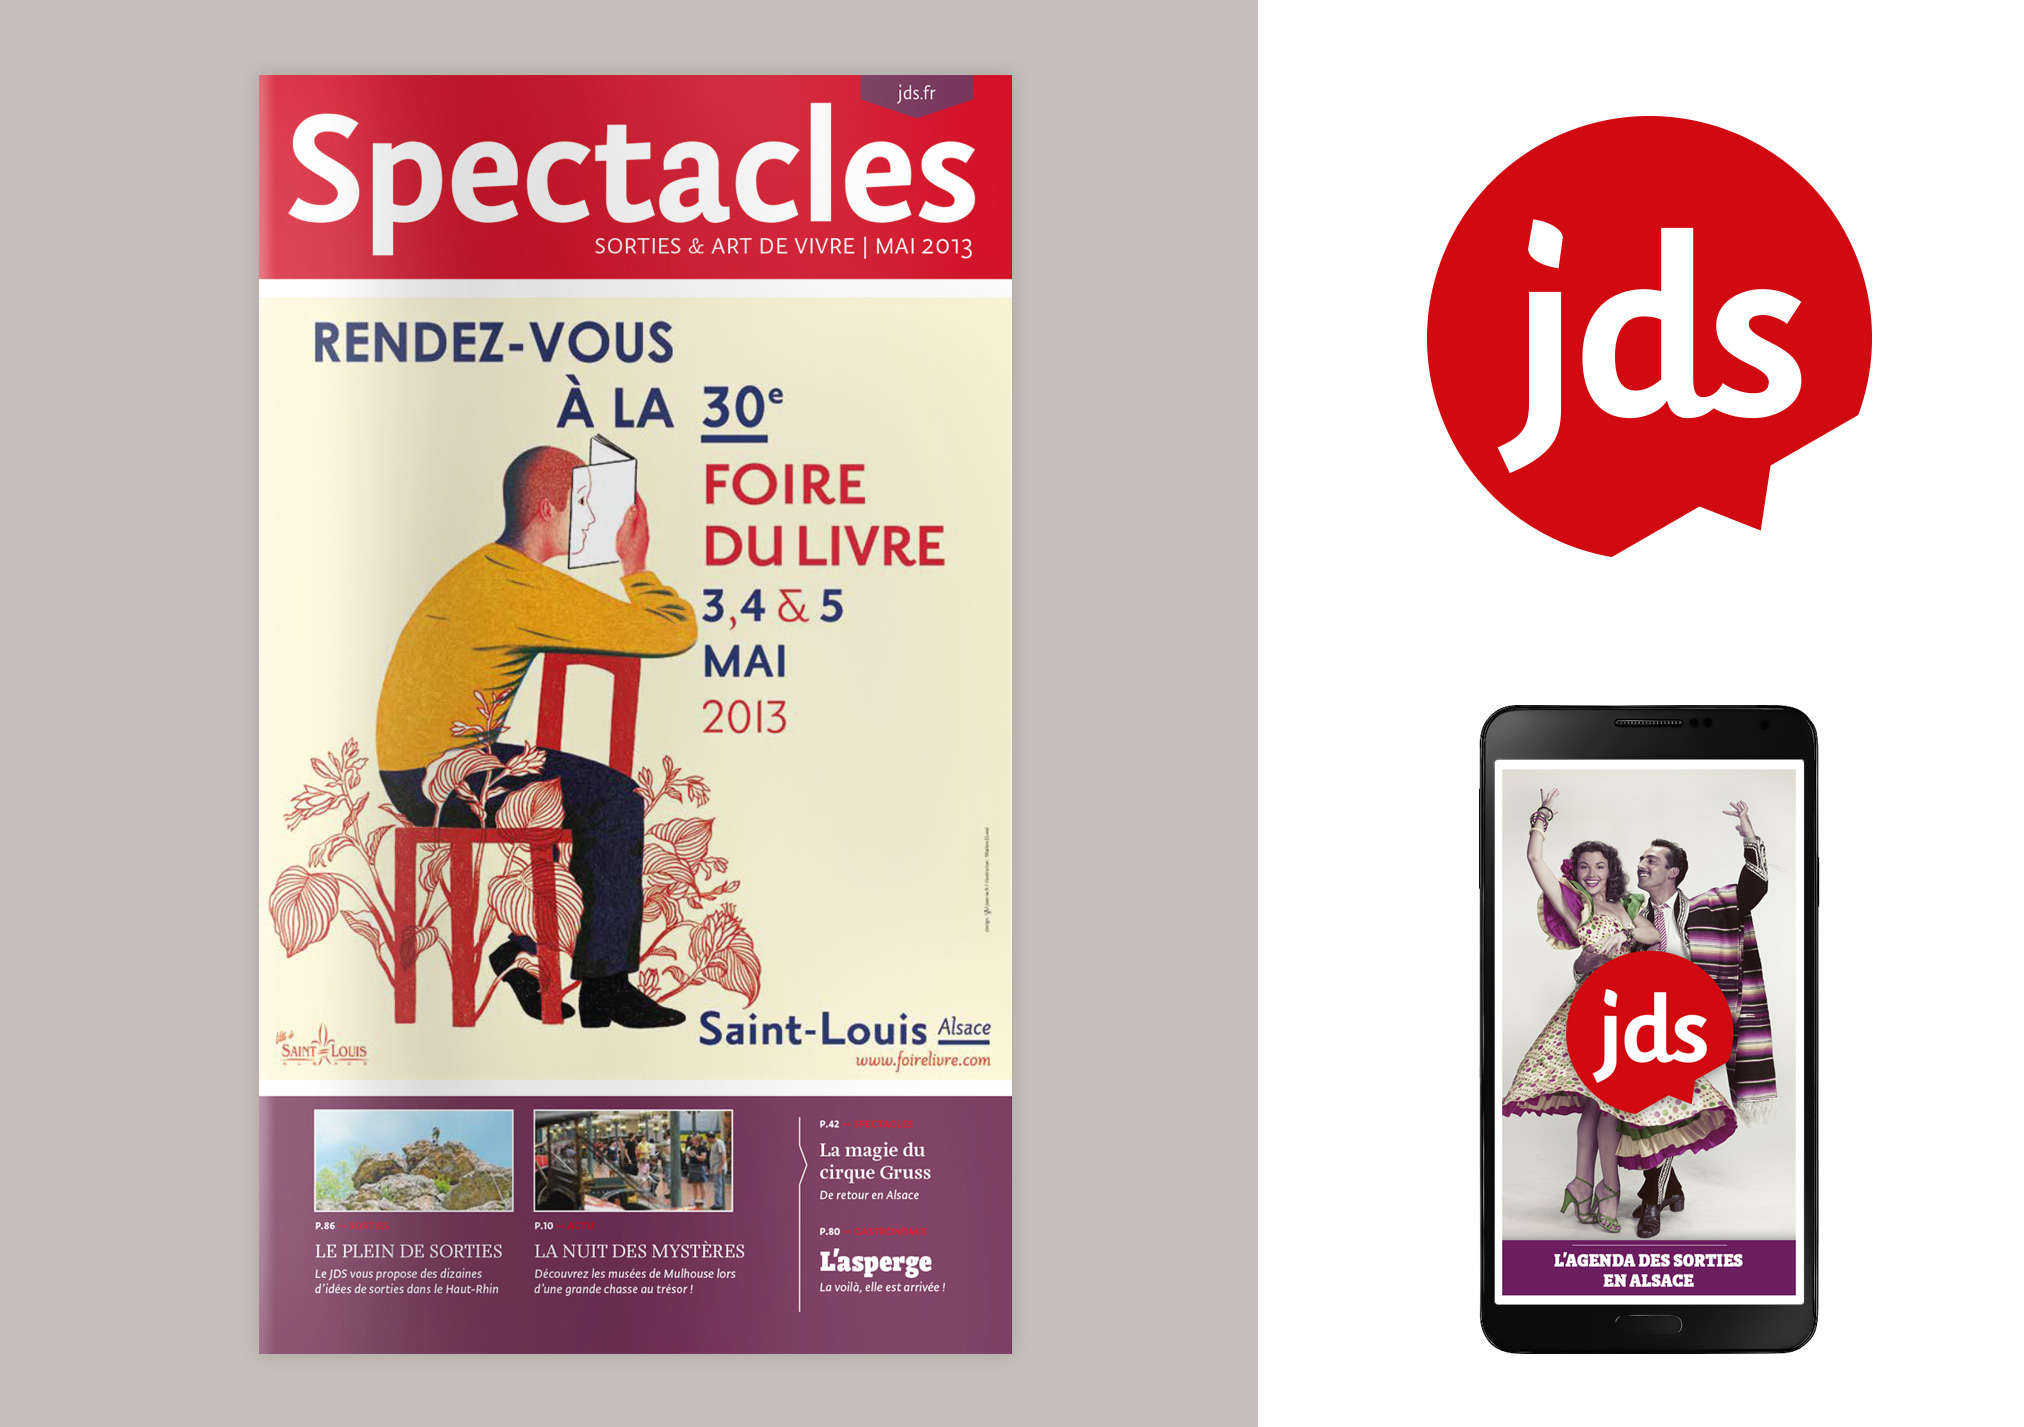 Jds - Journal des Spectacles